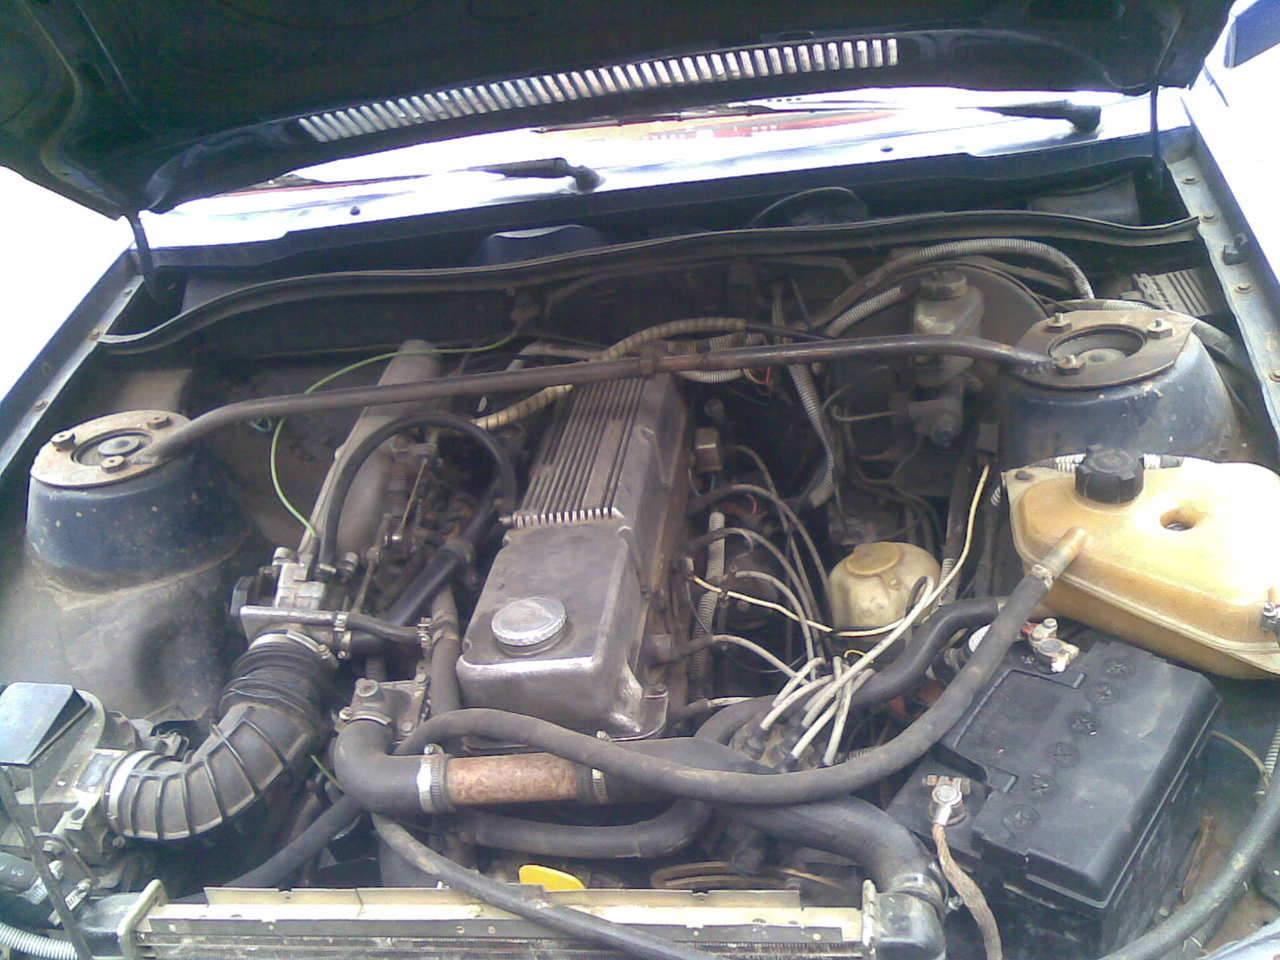 OPEL SENATOR engine